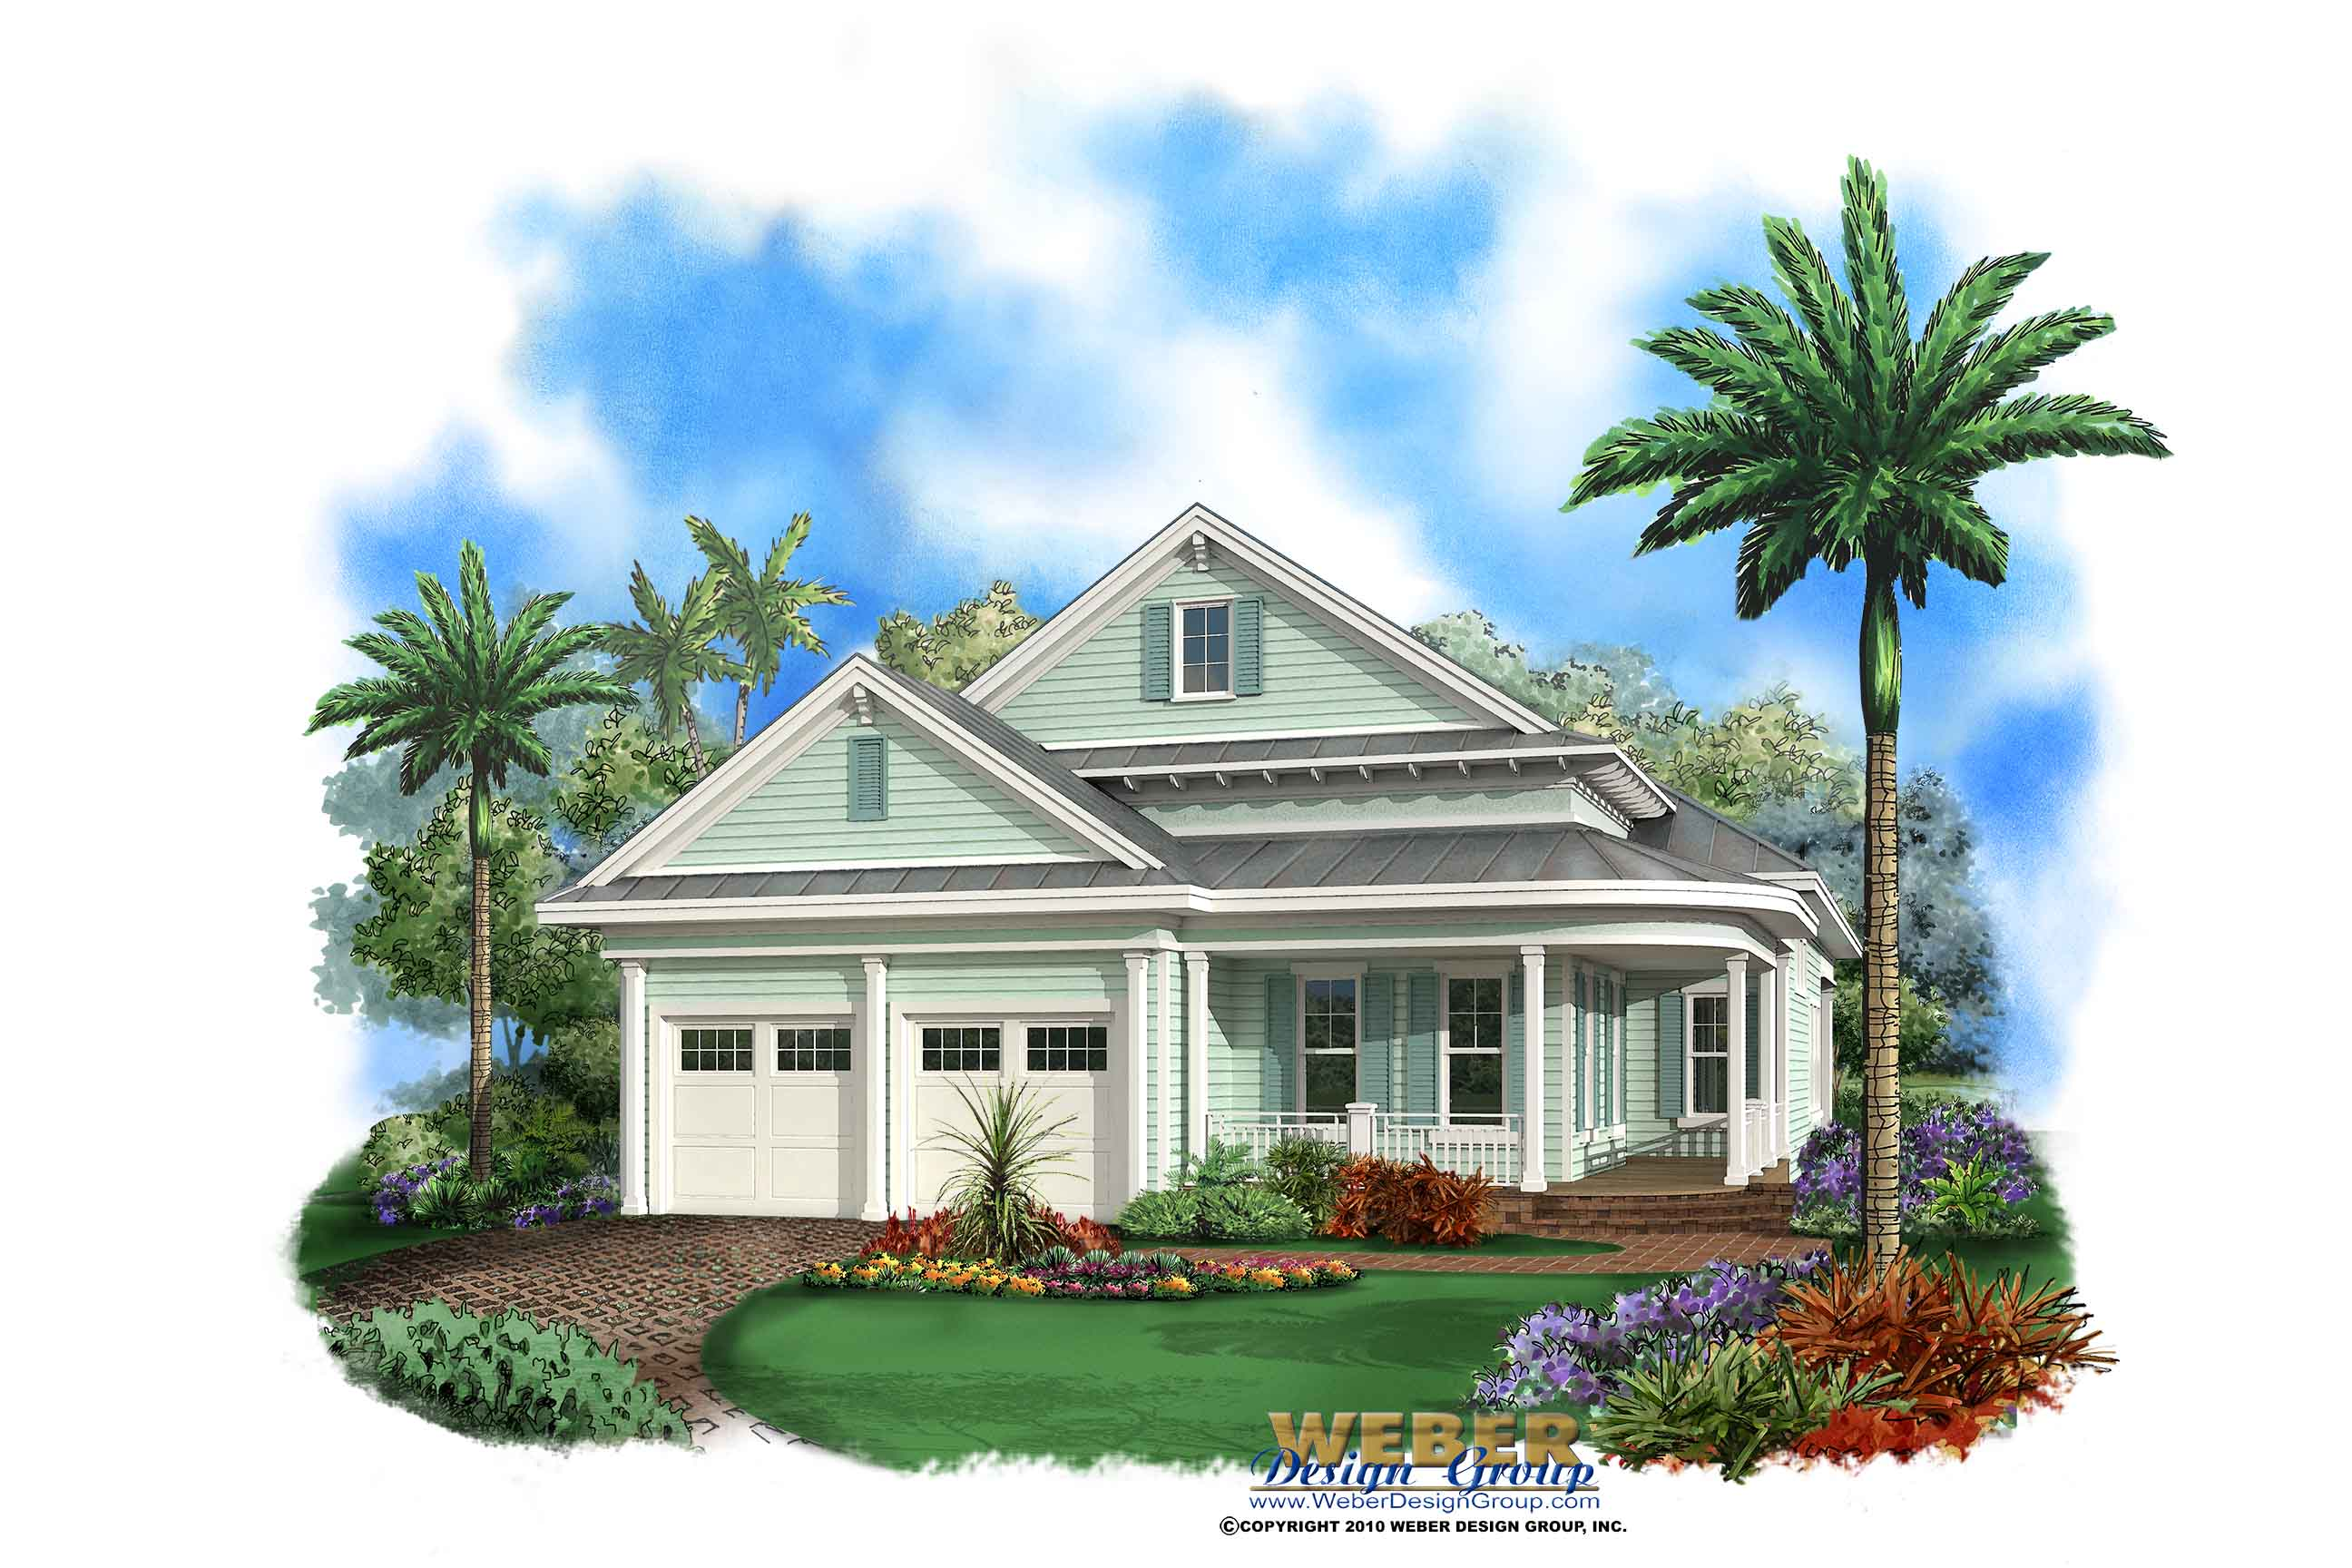 Waterfront house plans modern house for Waterfront house plans